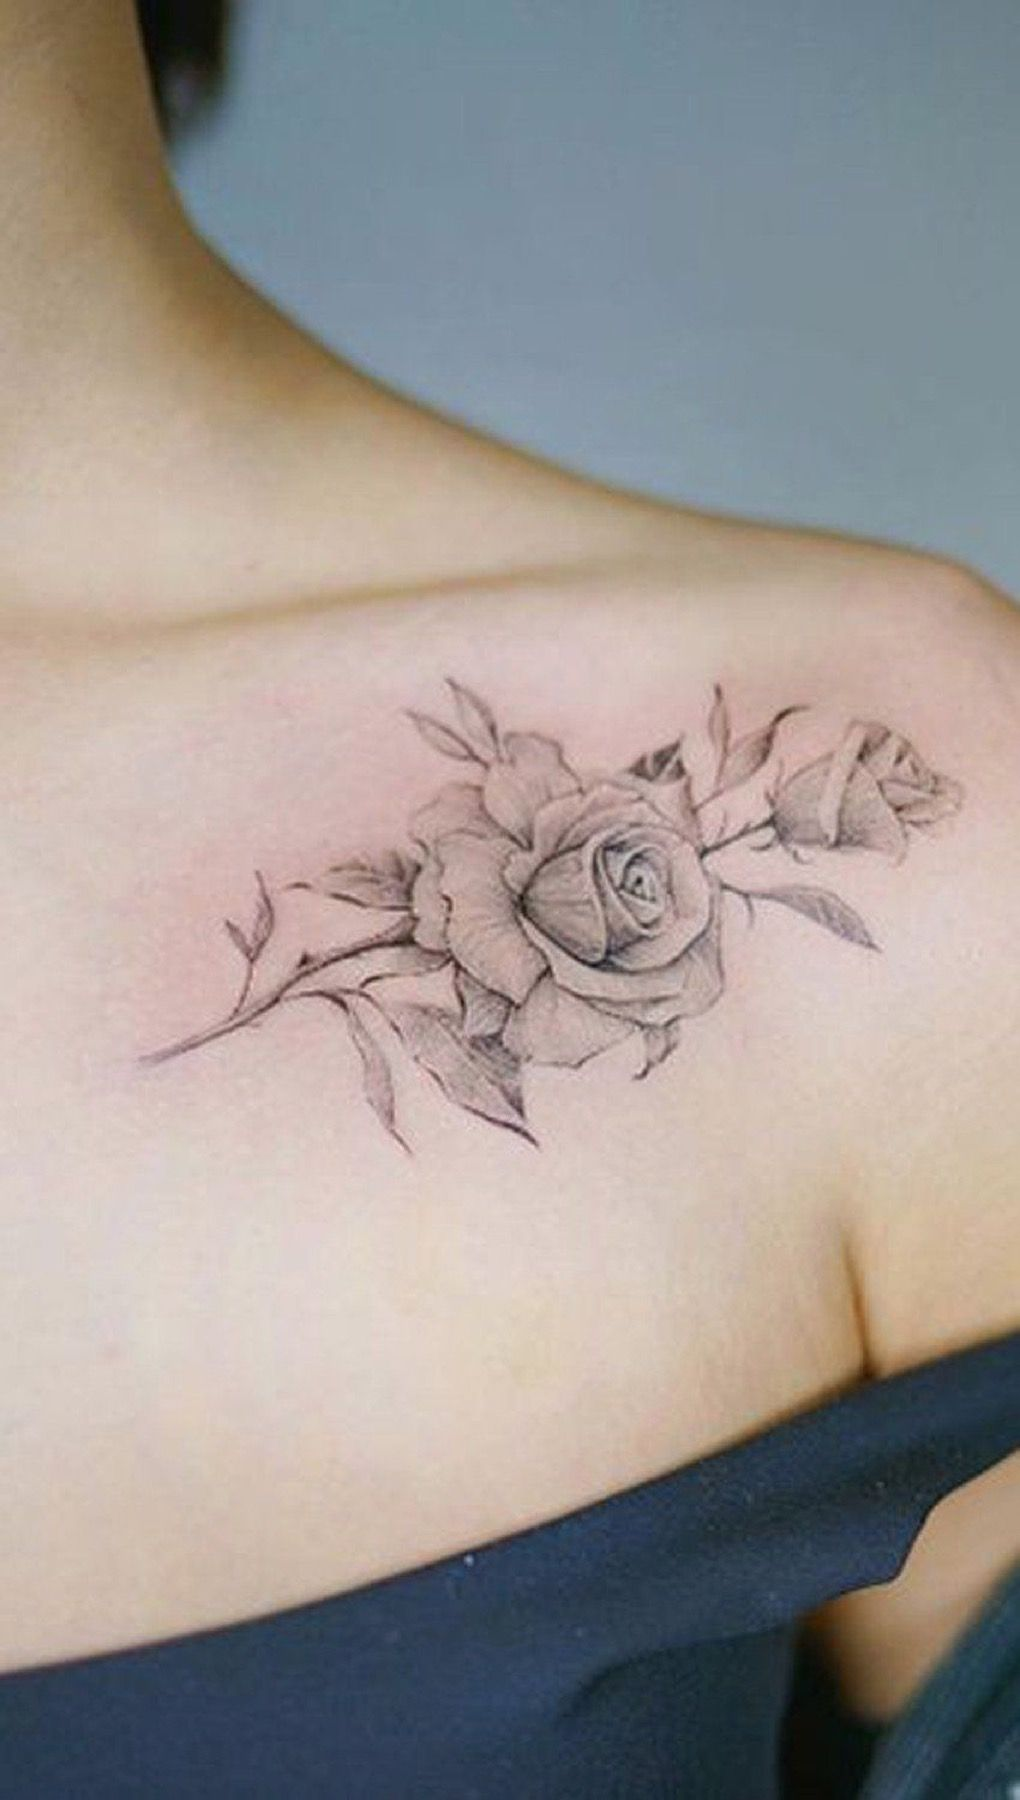 Special Back Shoulder Tattoo Ideas For Women Page 35 Chic Cuties Blog Elegant Tattoos Simple Rose Tattoo Shoulder Tattoo